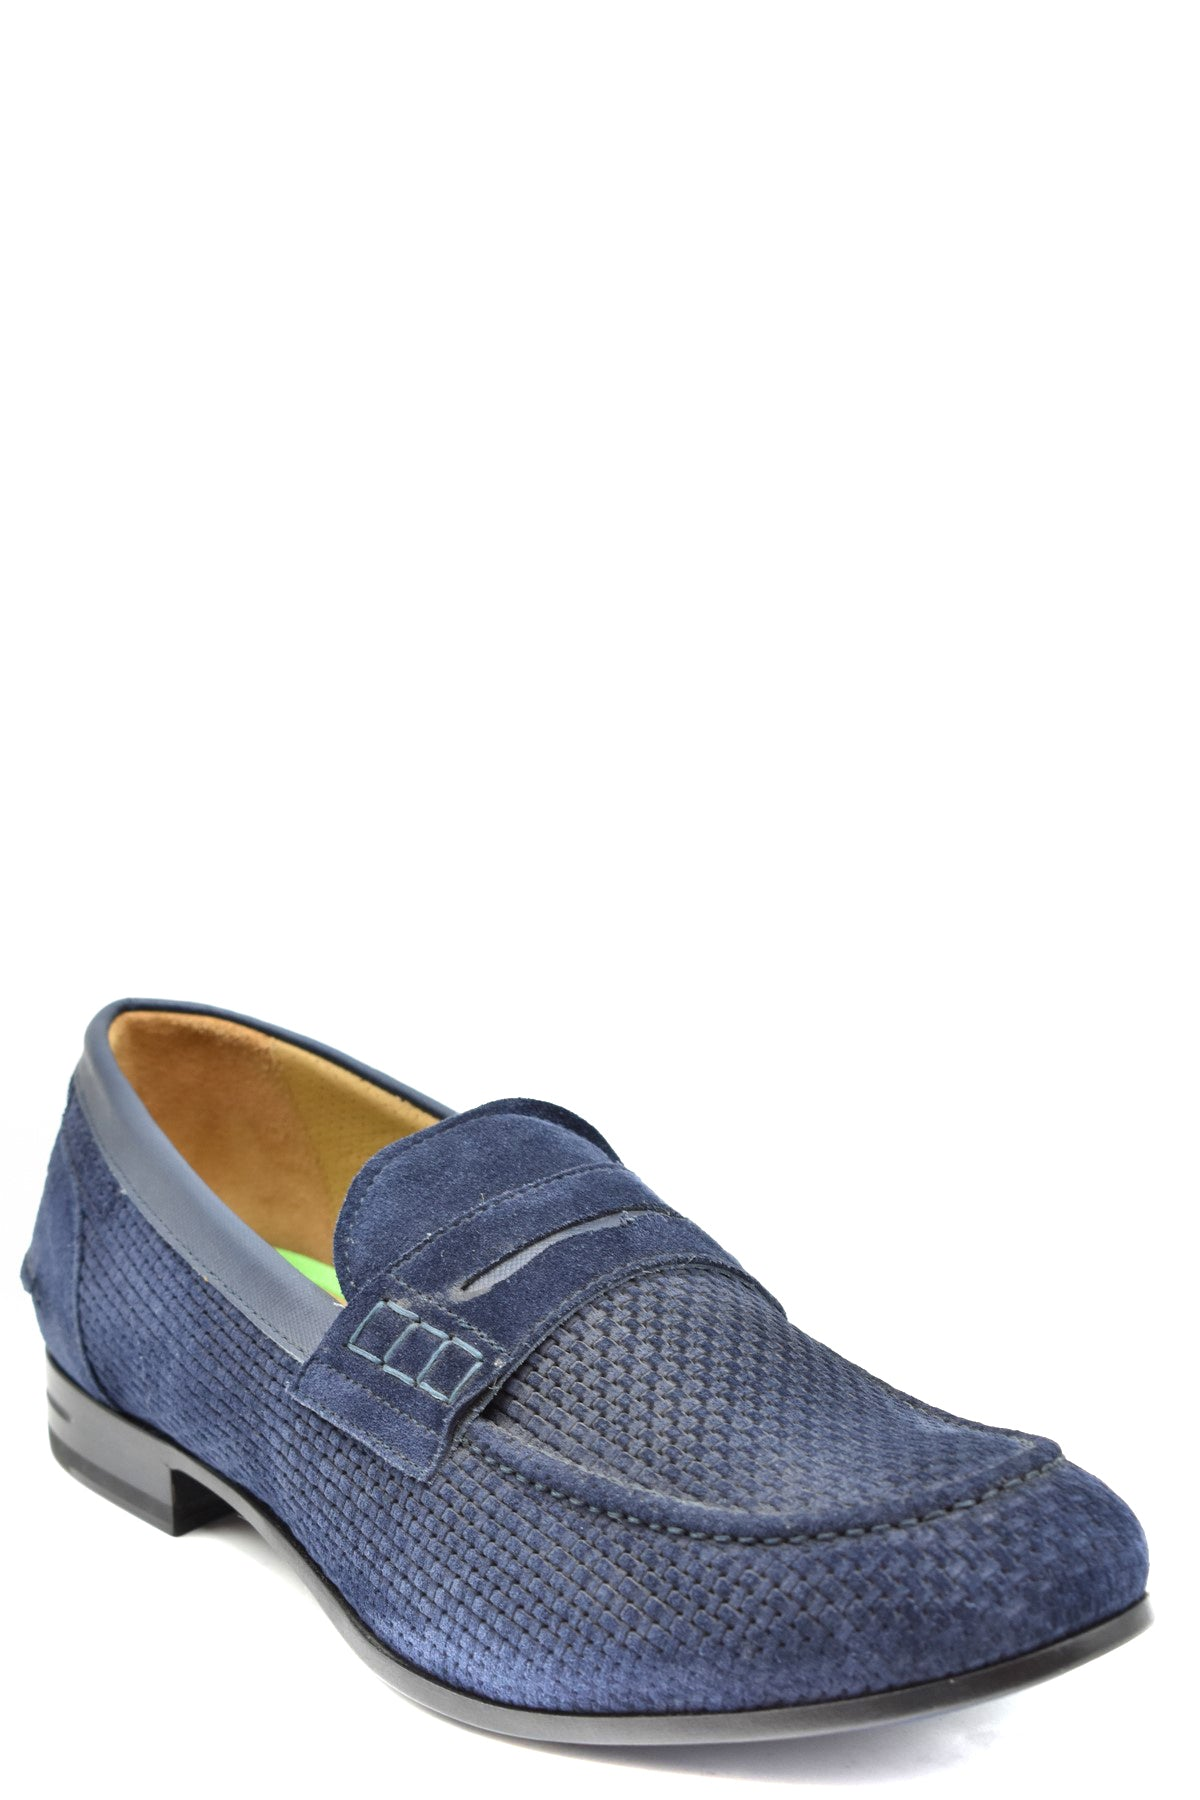 Shoes Brimarts-Men's Fashion - Men's Shoes - Loafers-Product Details Terms: New With LabelMain Color: BlueType Of Accessory: ShoesSeason: Fall / WinterMade In: ItalyGender: ManSize: EuComposition: Chamois 100%Year: 2019Manufacturer Part Number: 315190N-Keyomi-Sook